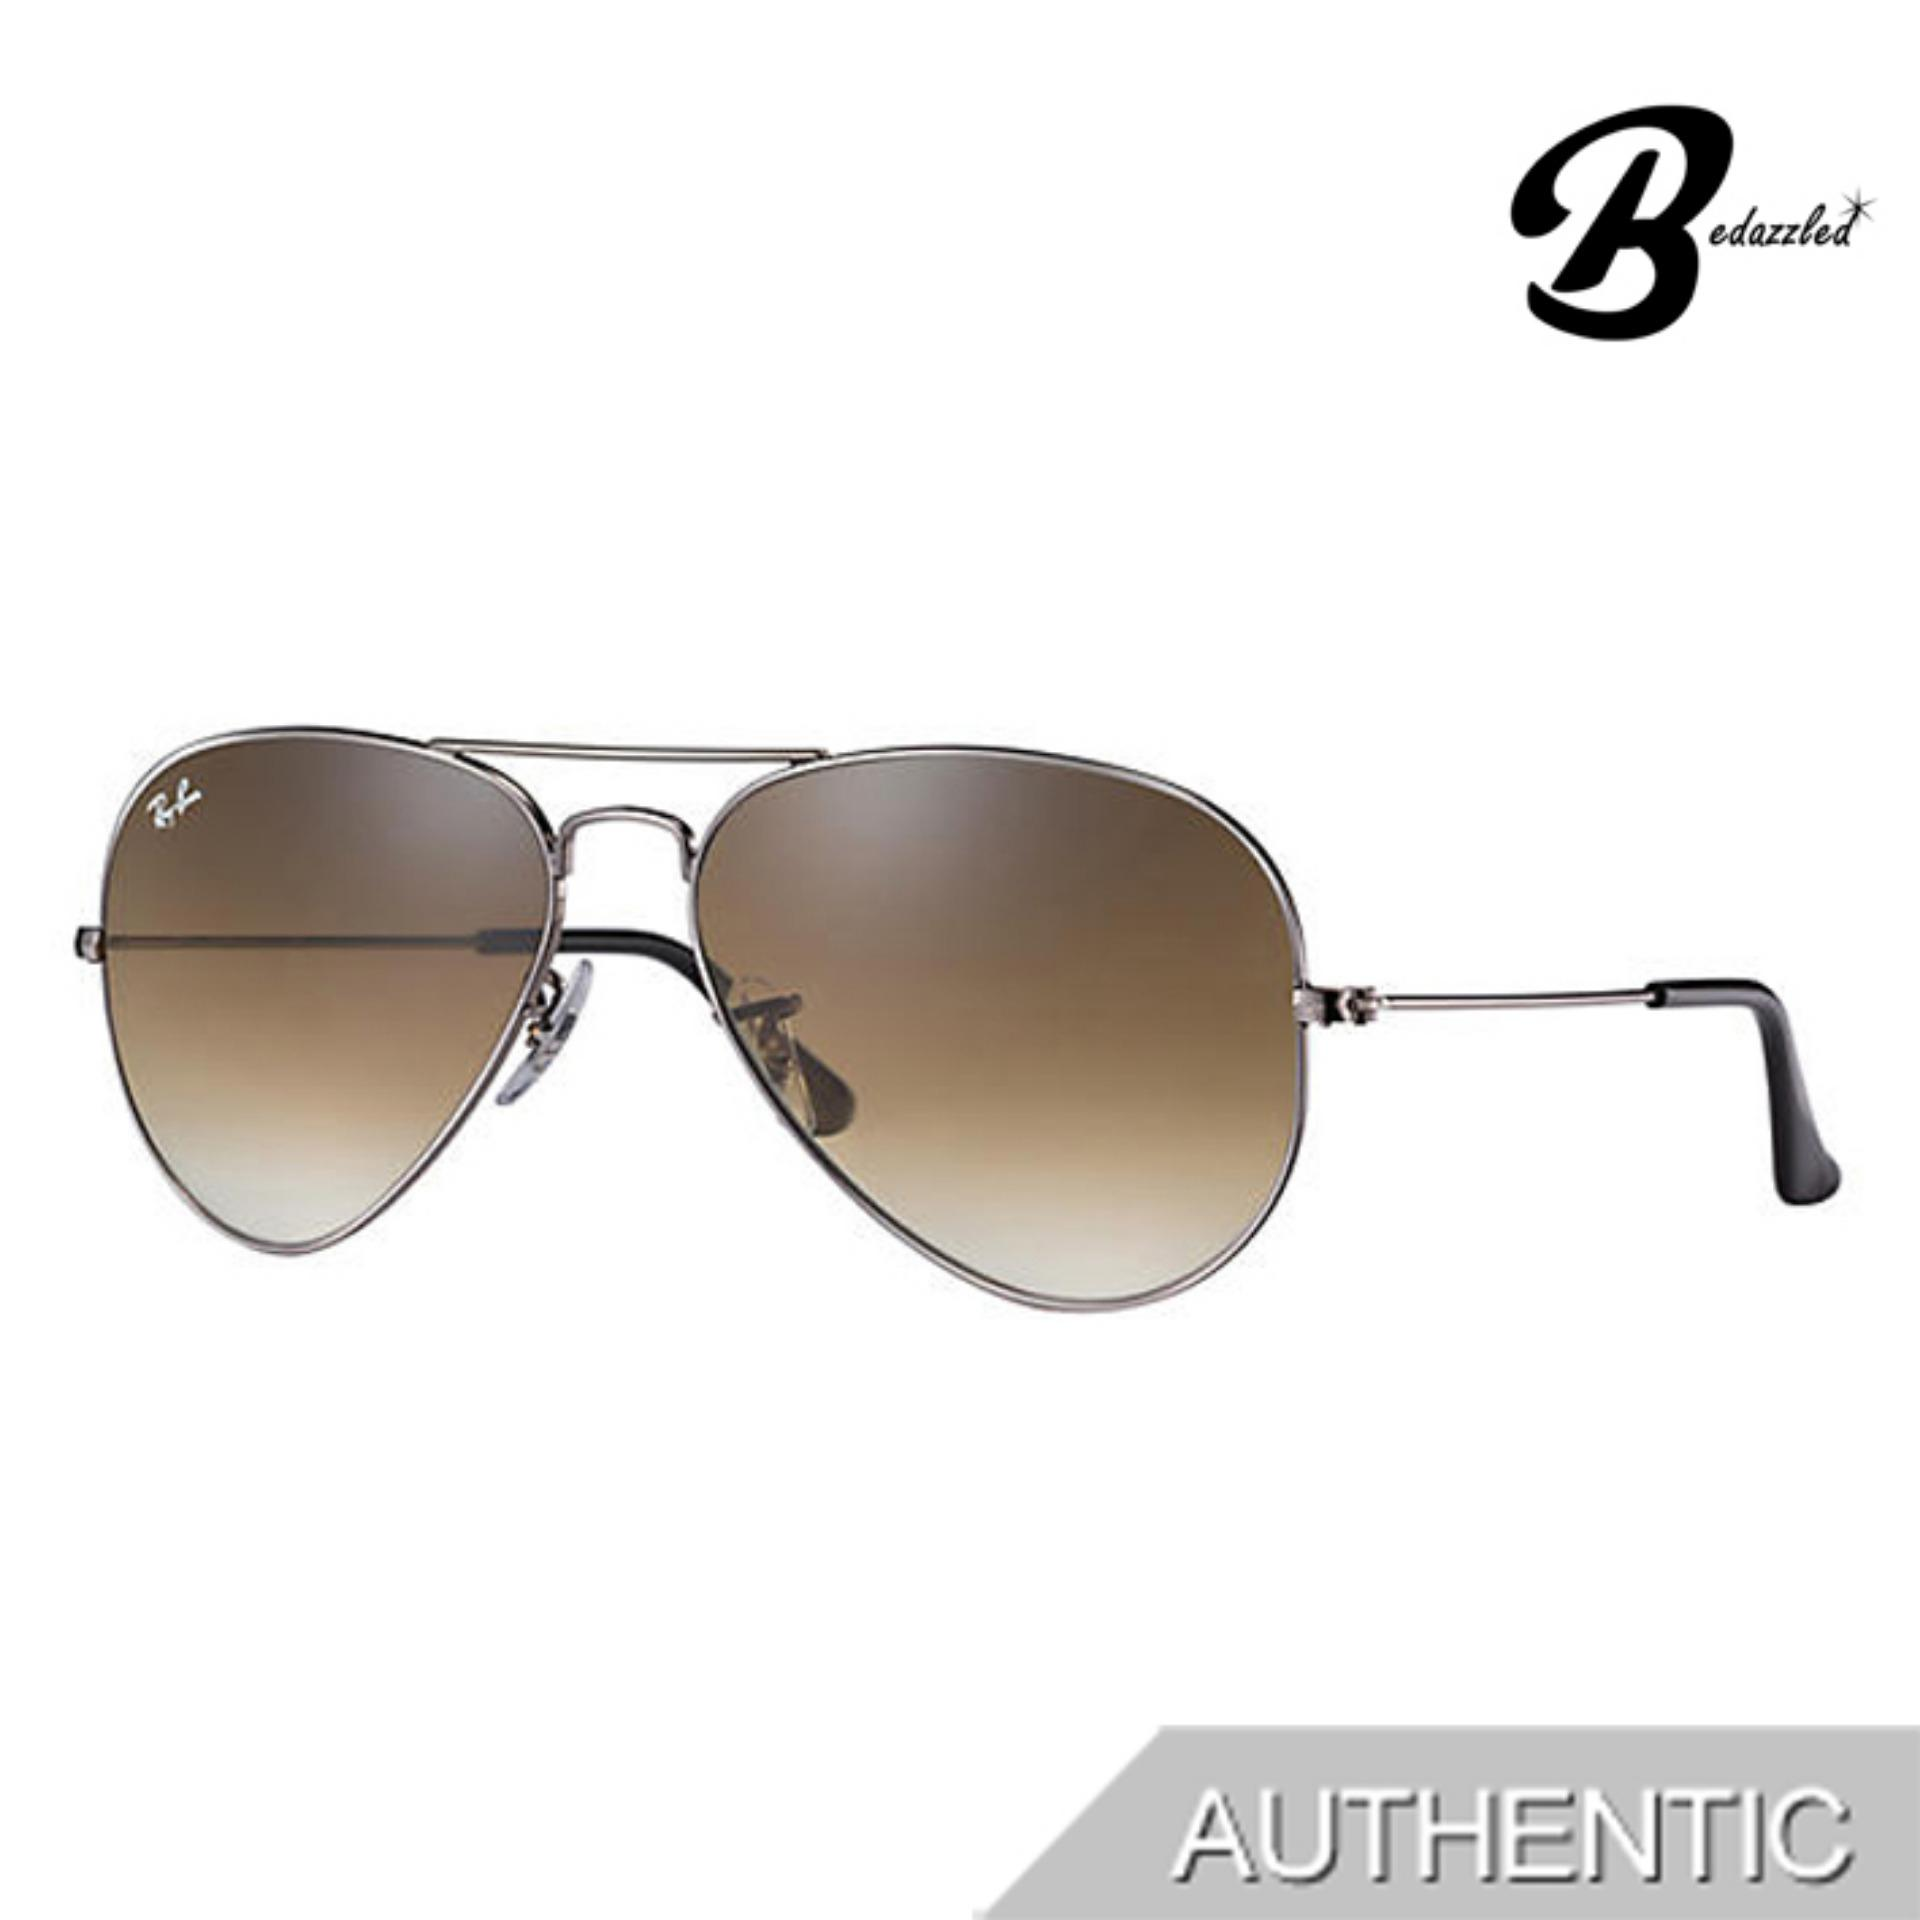 Ray-Ban Aviator Gradient Rb3025004/5158 By Bedazzled.